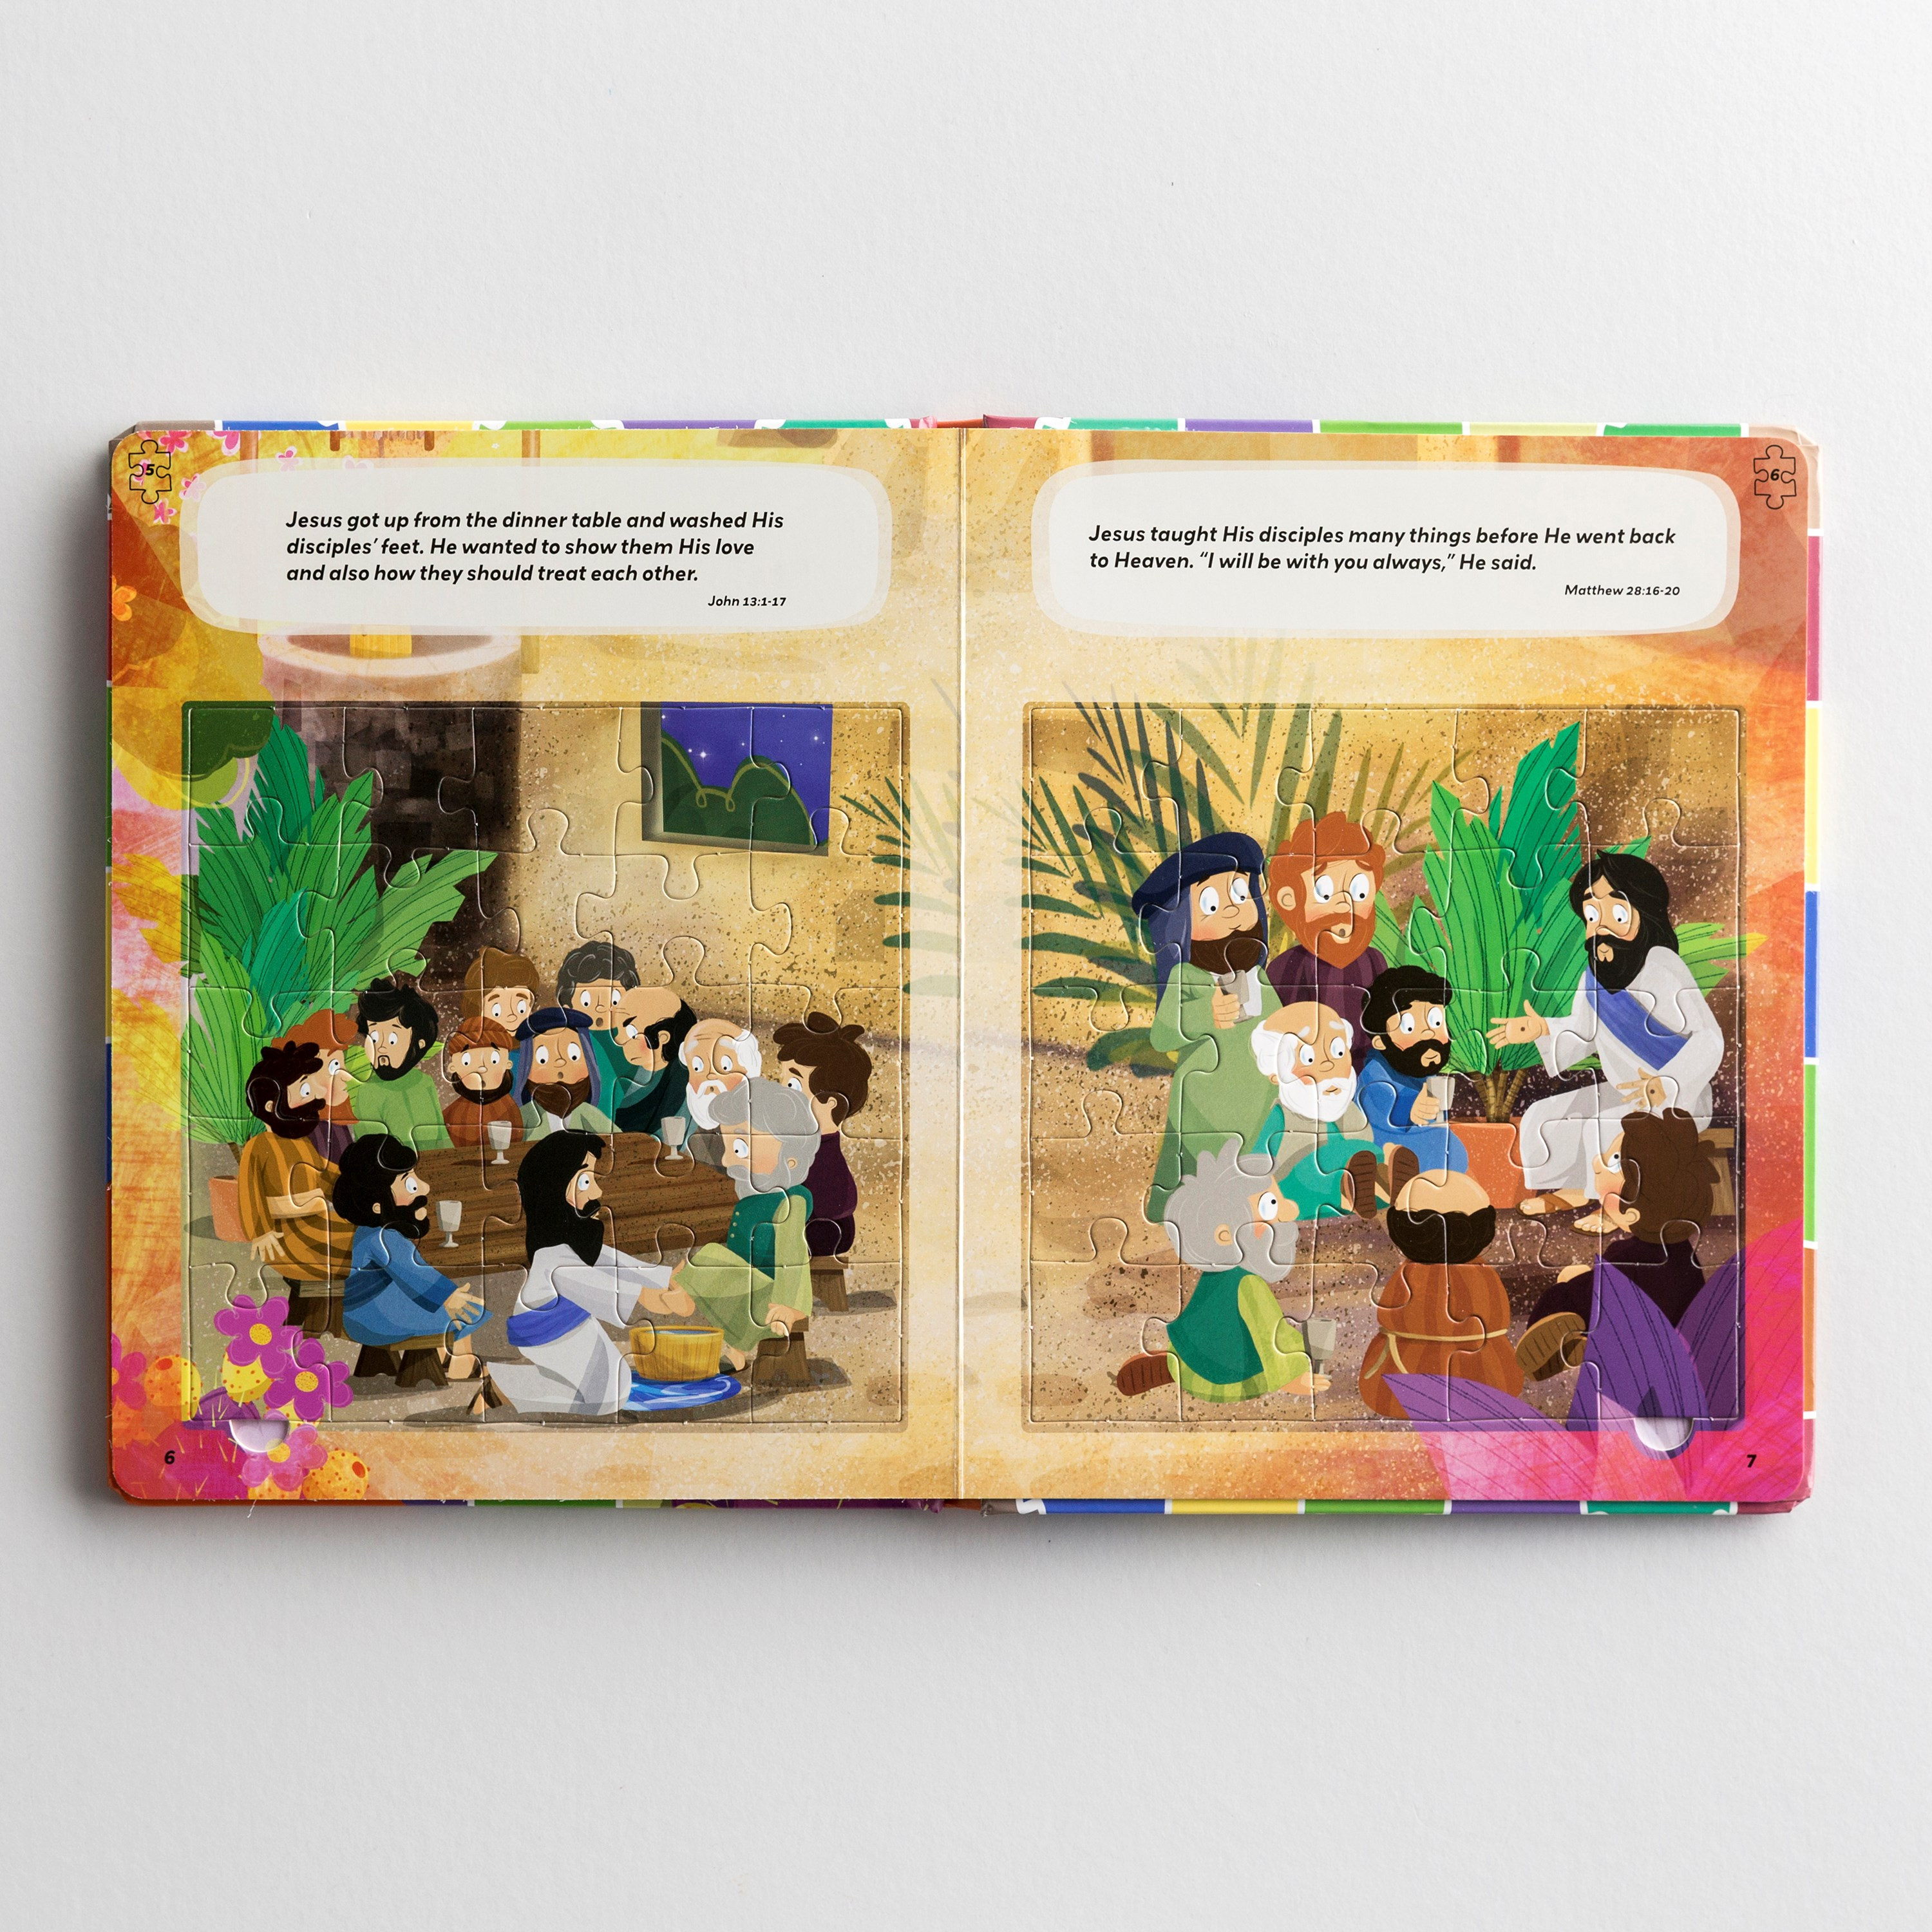 6-In-1 Puzzle Bible: The Love of Jesus (Board Book)